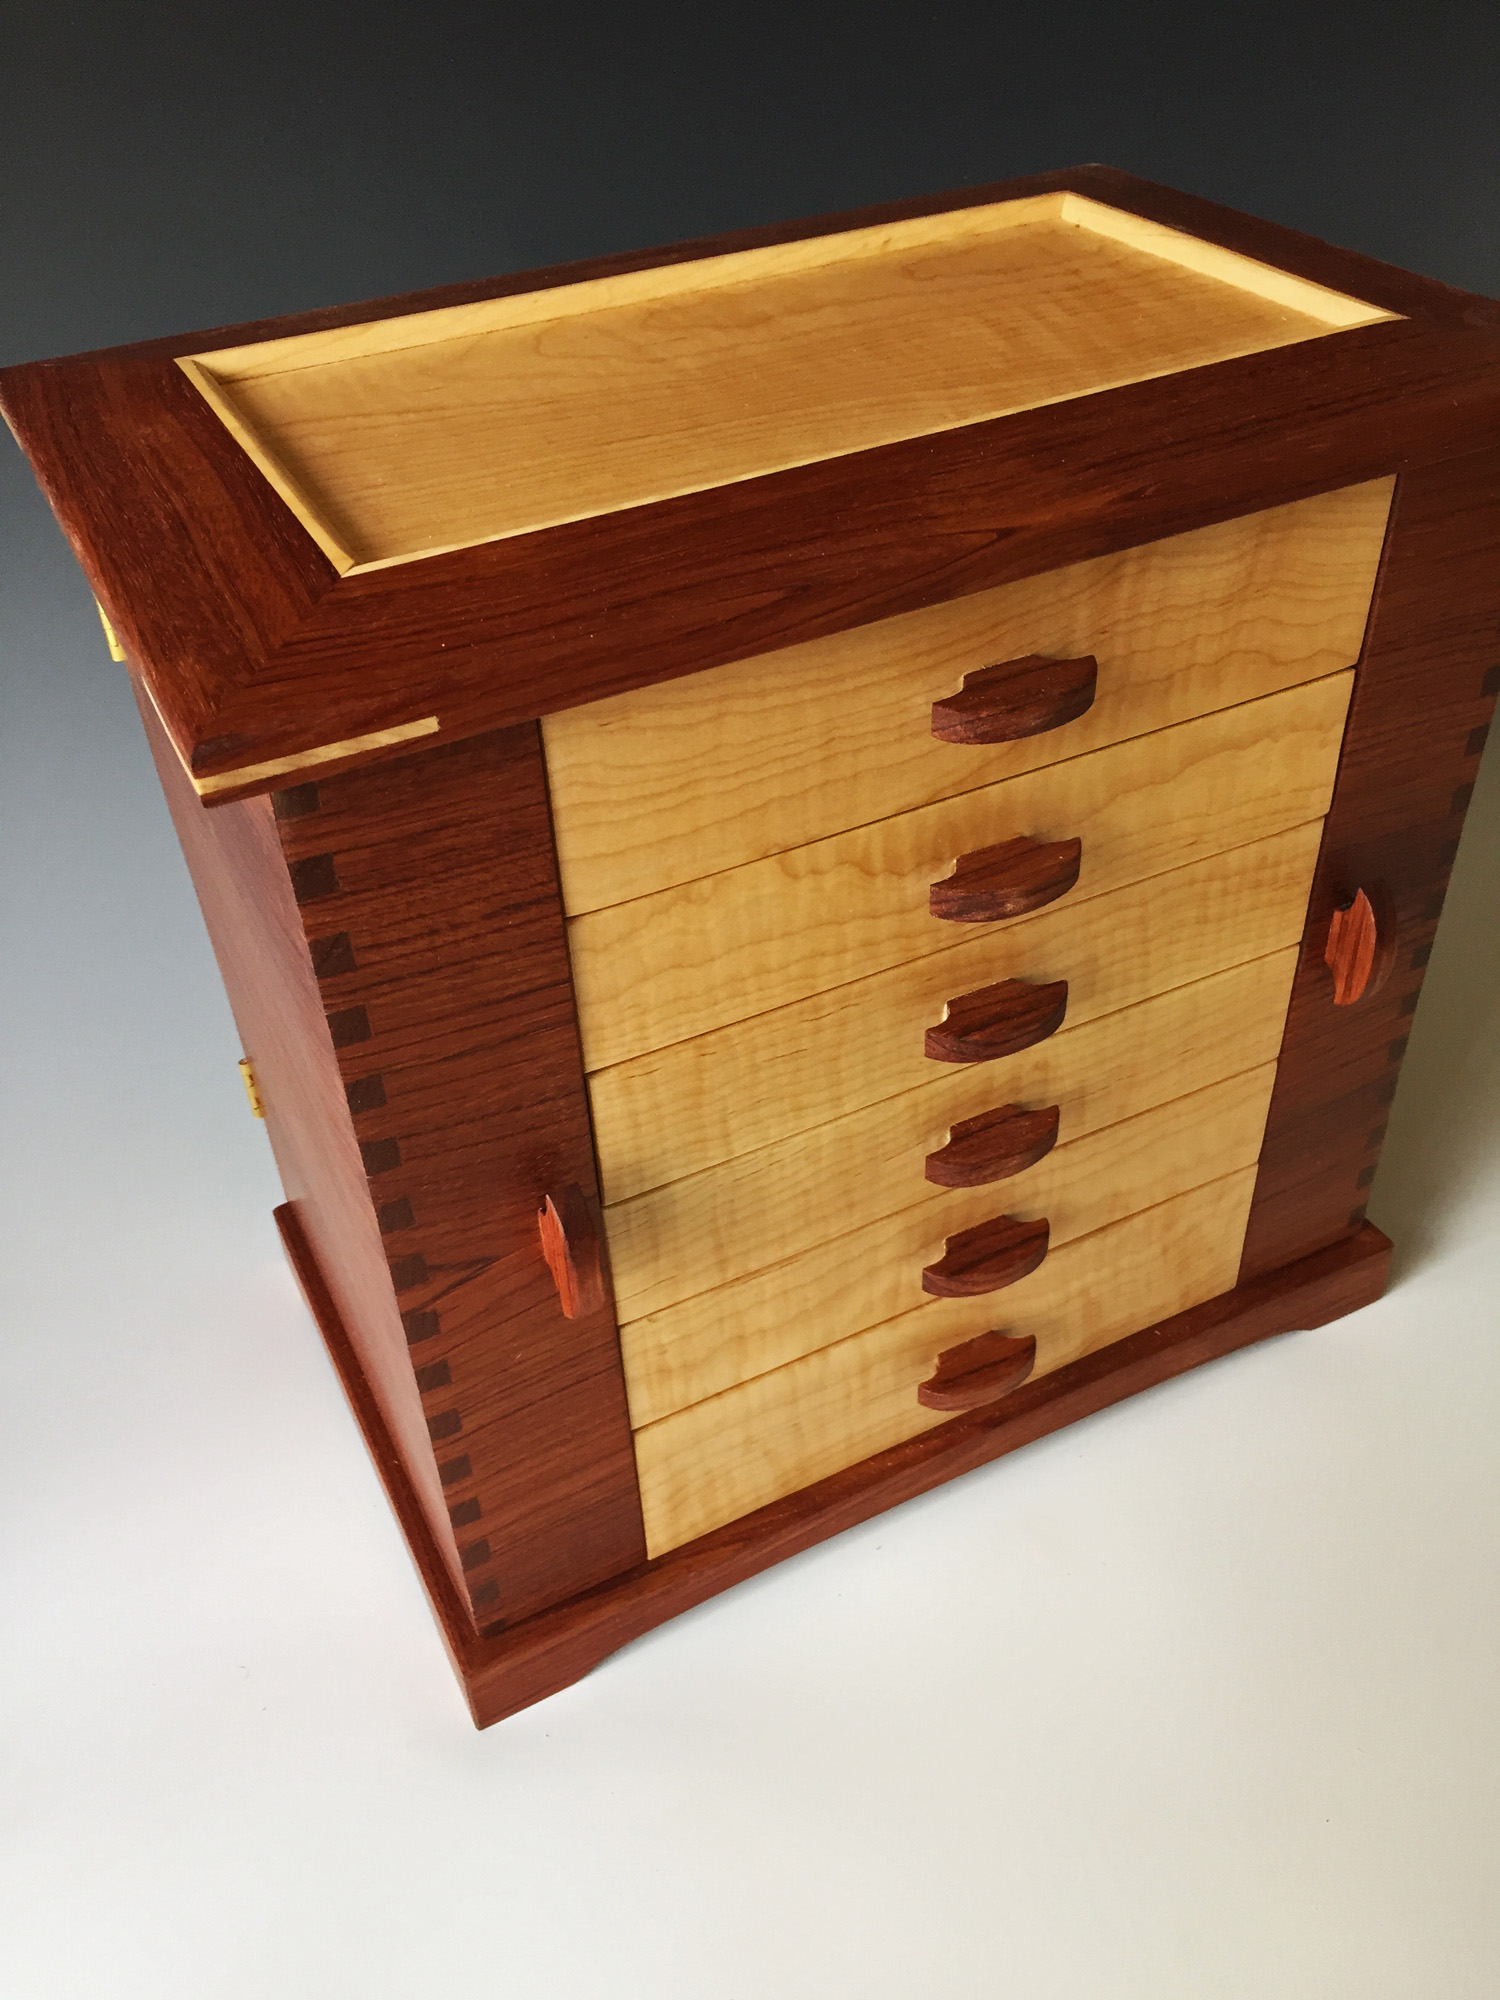 Large Jewelry Boxes Make The Most Unique Gifts For Women